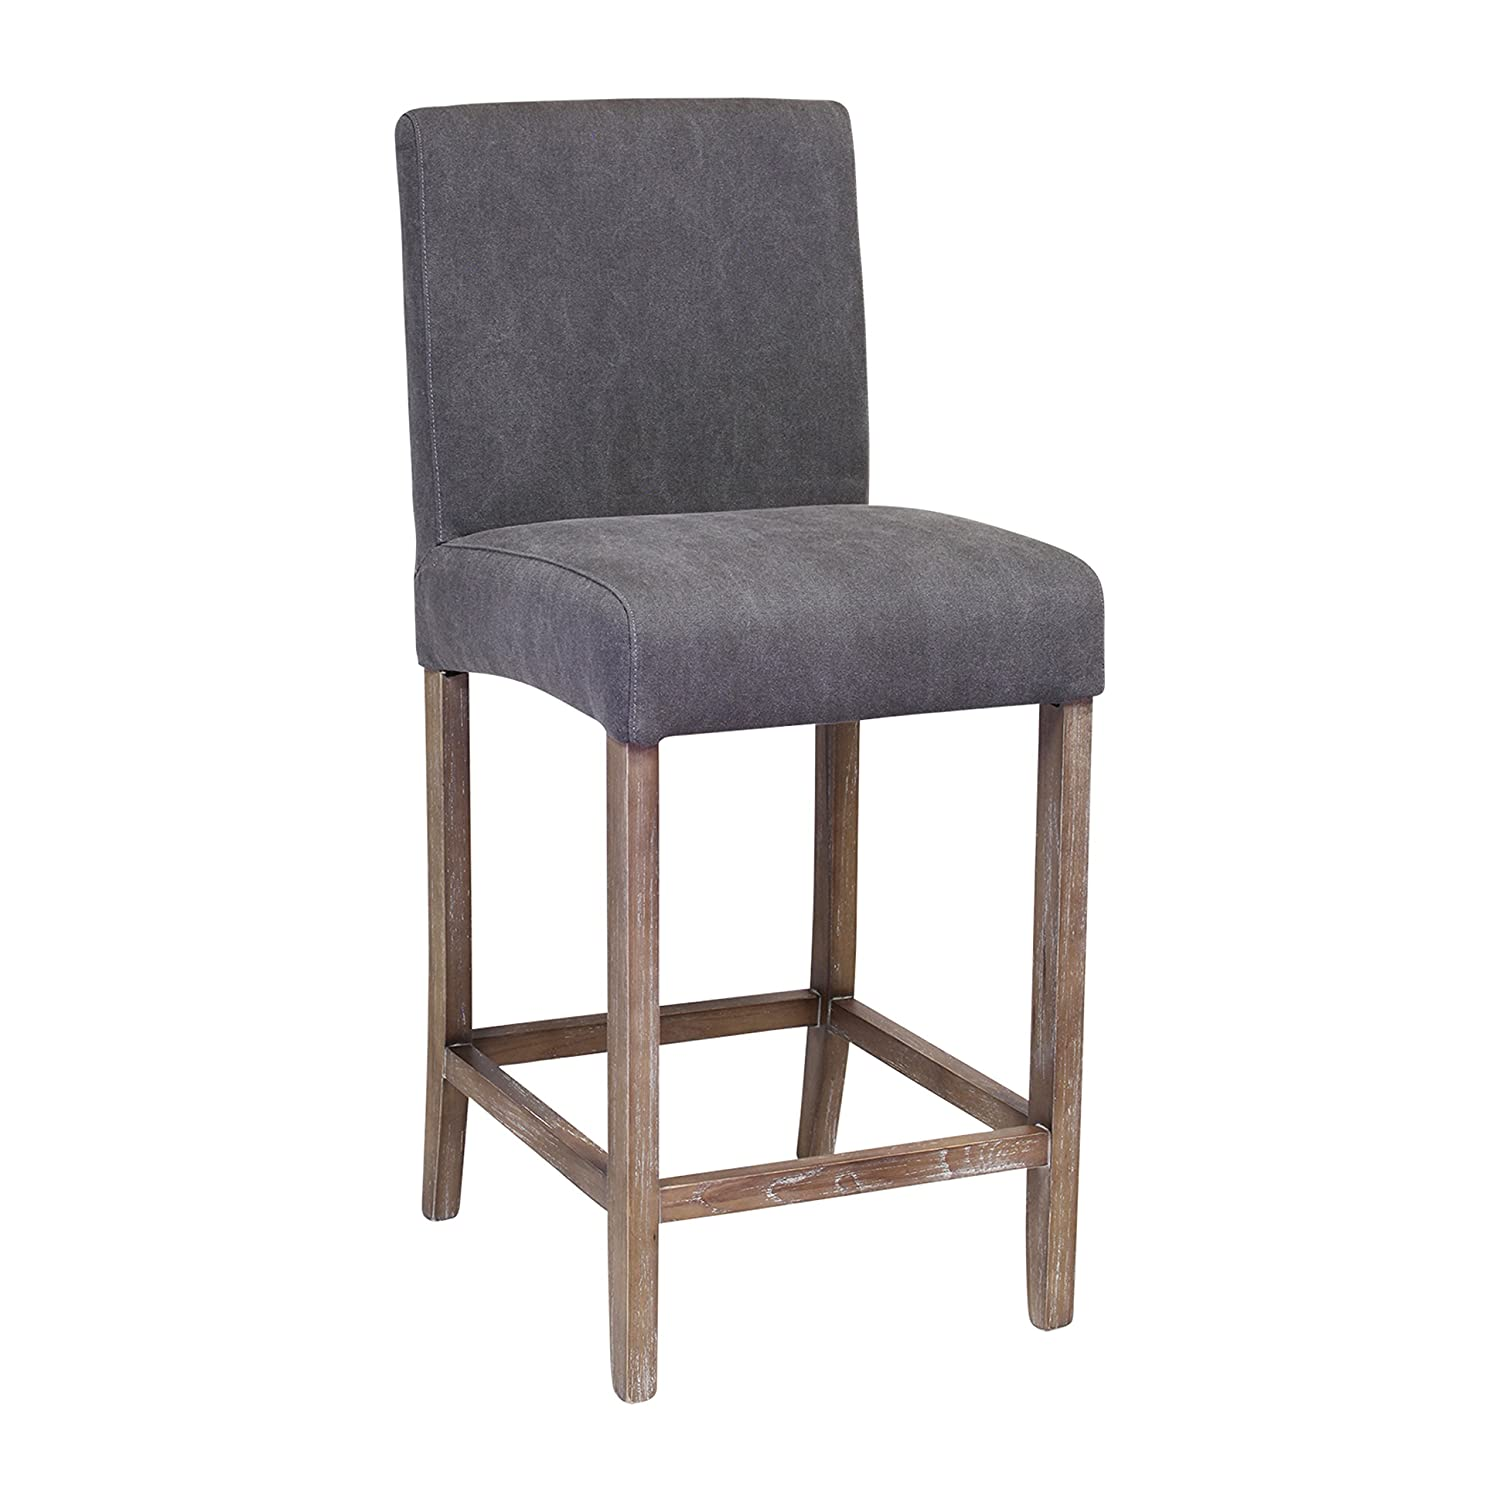 Marvelous Amazon Com Design Tree Home James Counter Stool Frost Grey Cjindustries Chair Design For Home Cjindustriesco